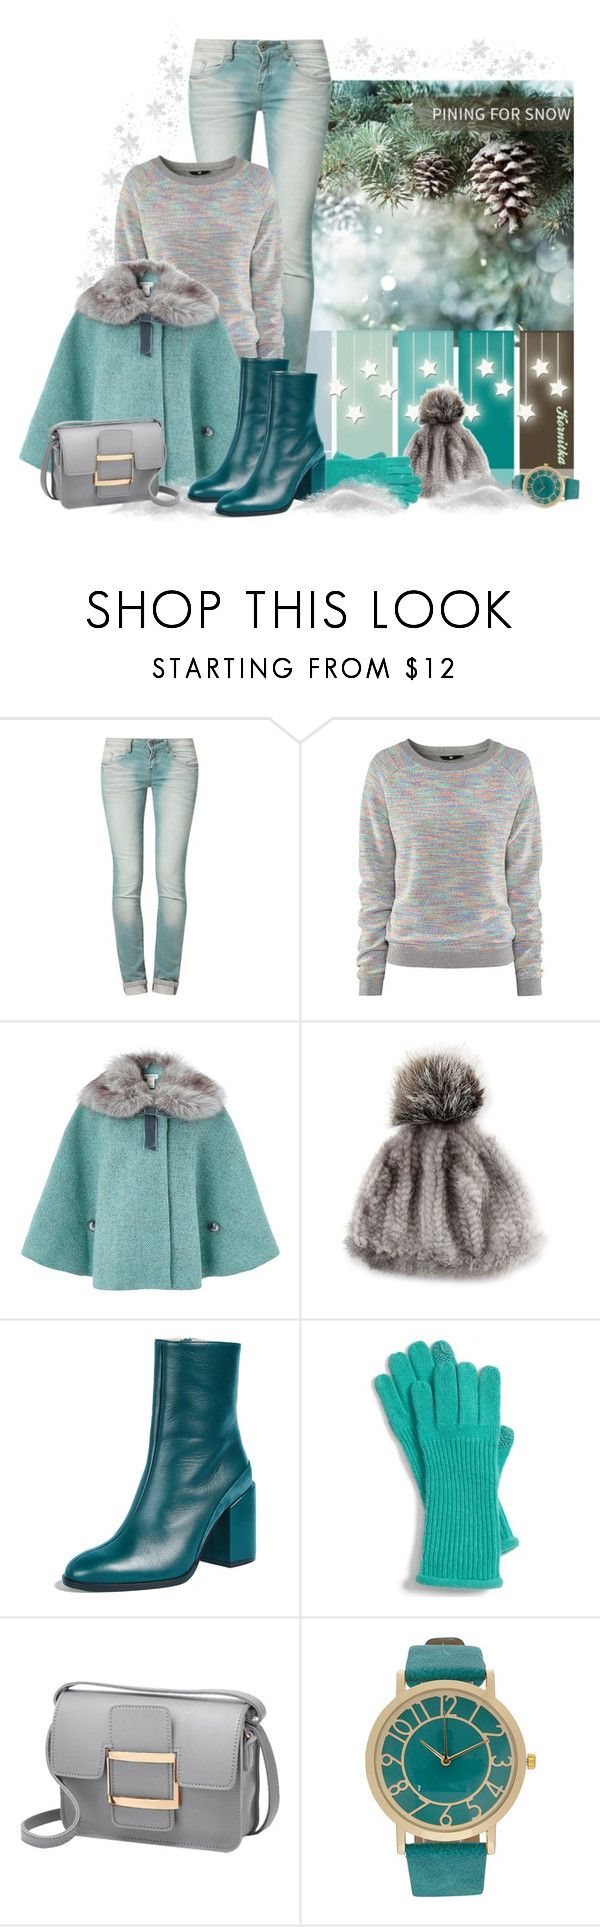 """nr 2160 / Winter Palette"" by kornitka ❤ liked on Polyvore featuring One Green Elephant, H&M, Monsoon, Adrienne Landau, Dear Frances, Nordstrom and Winter"